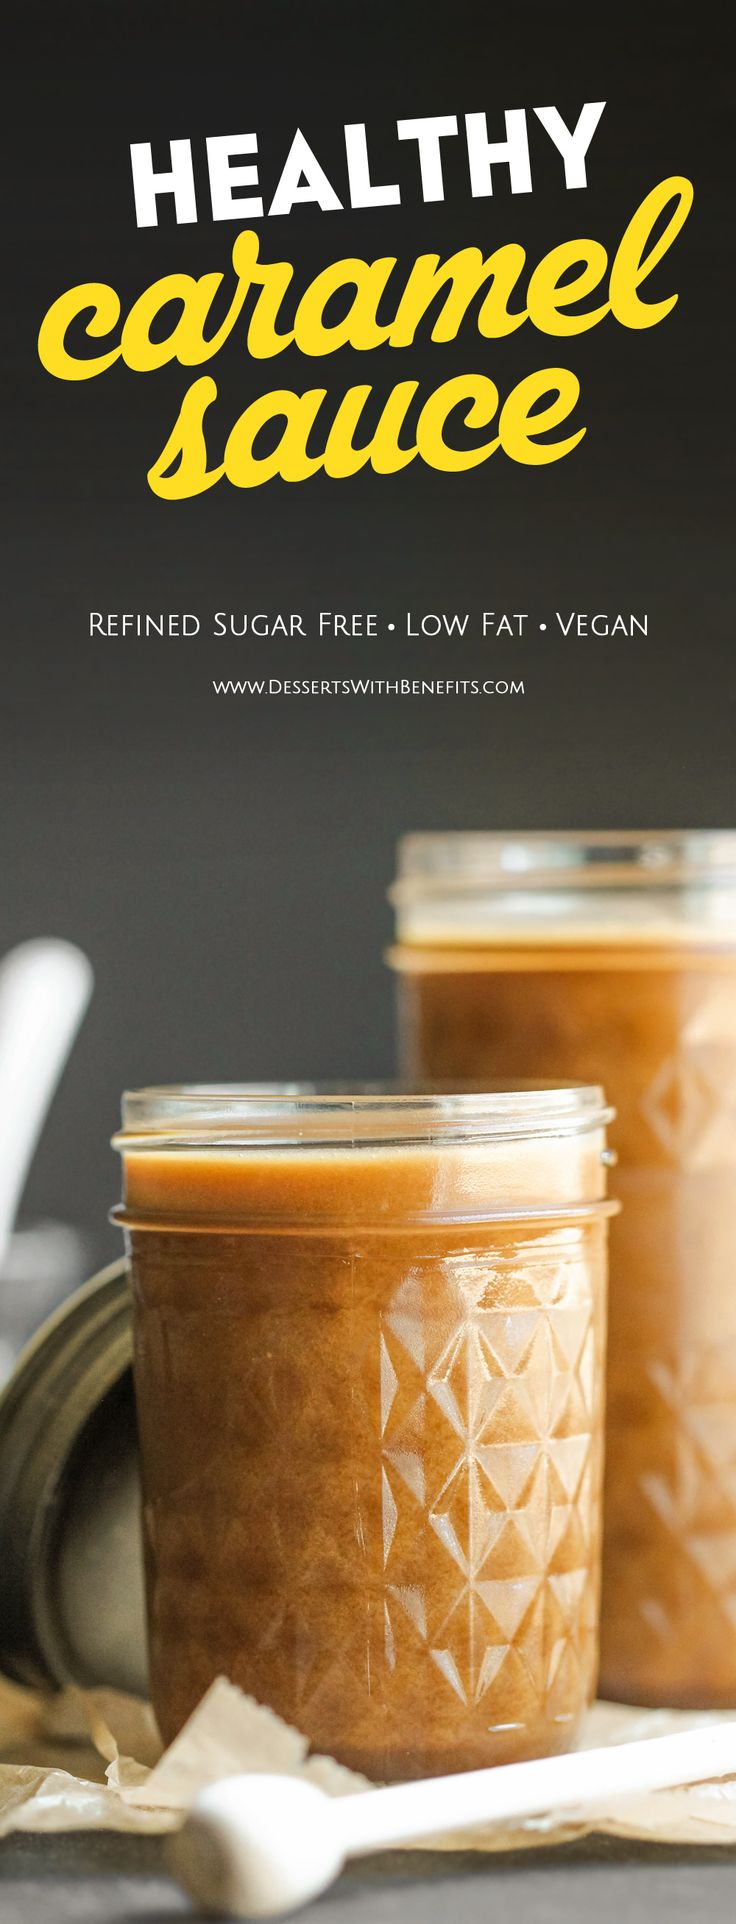 How to make Healthy Homemade Caramel Sauce! This sweet and velvety caramel sauce is made without the white sugar, corn syrup, heavy cream, and butter, but you'd never know it. And did I mention it's vegan, dairy free, and gluten free too? Don't buy caramel sauce, DIY it! -- Healthy Dessert Recipes with sugar free, low calorie, low fat, high protein, gluten free, dairy free, and vegan options at the Desserts With Benefits Blog (www.DessertsWithBenefits.com)